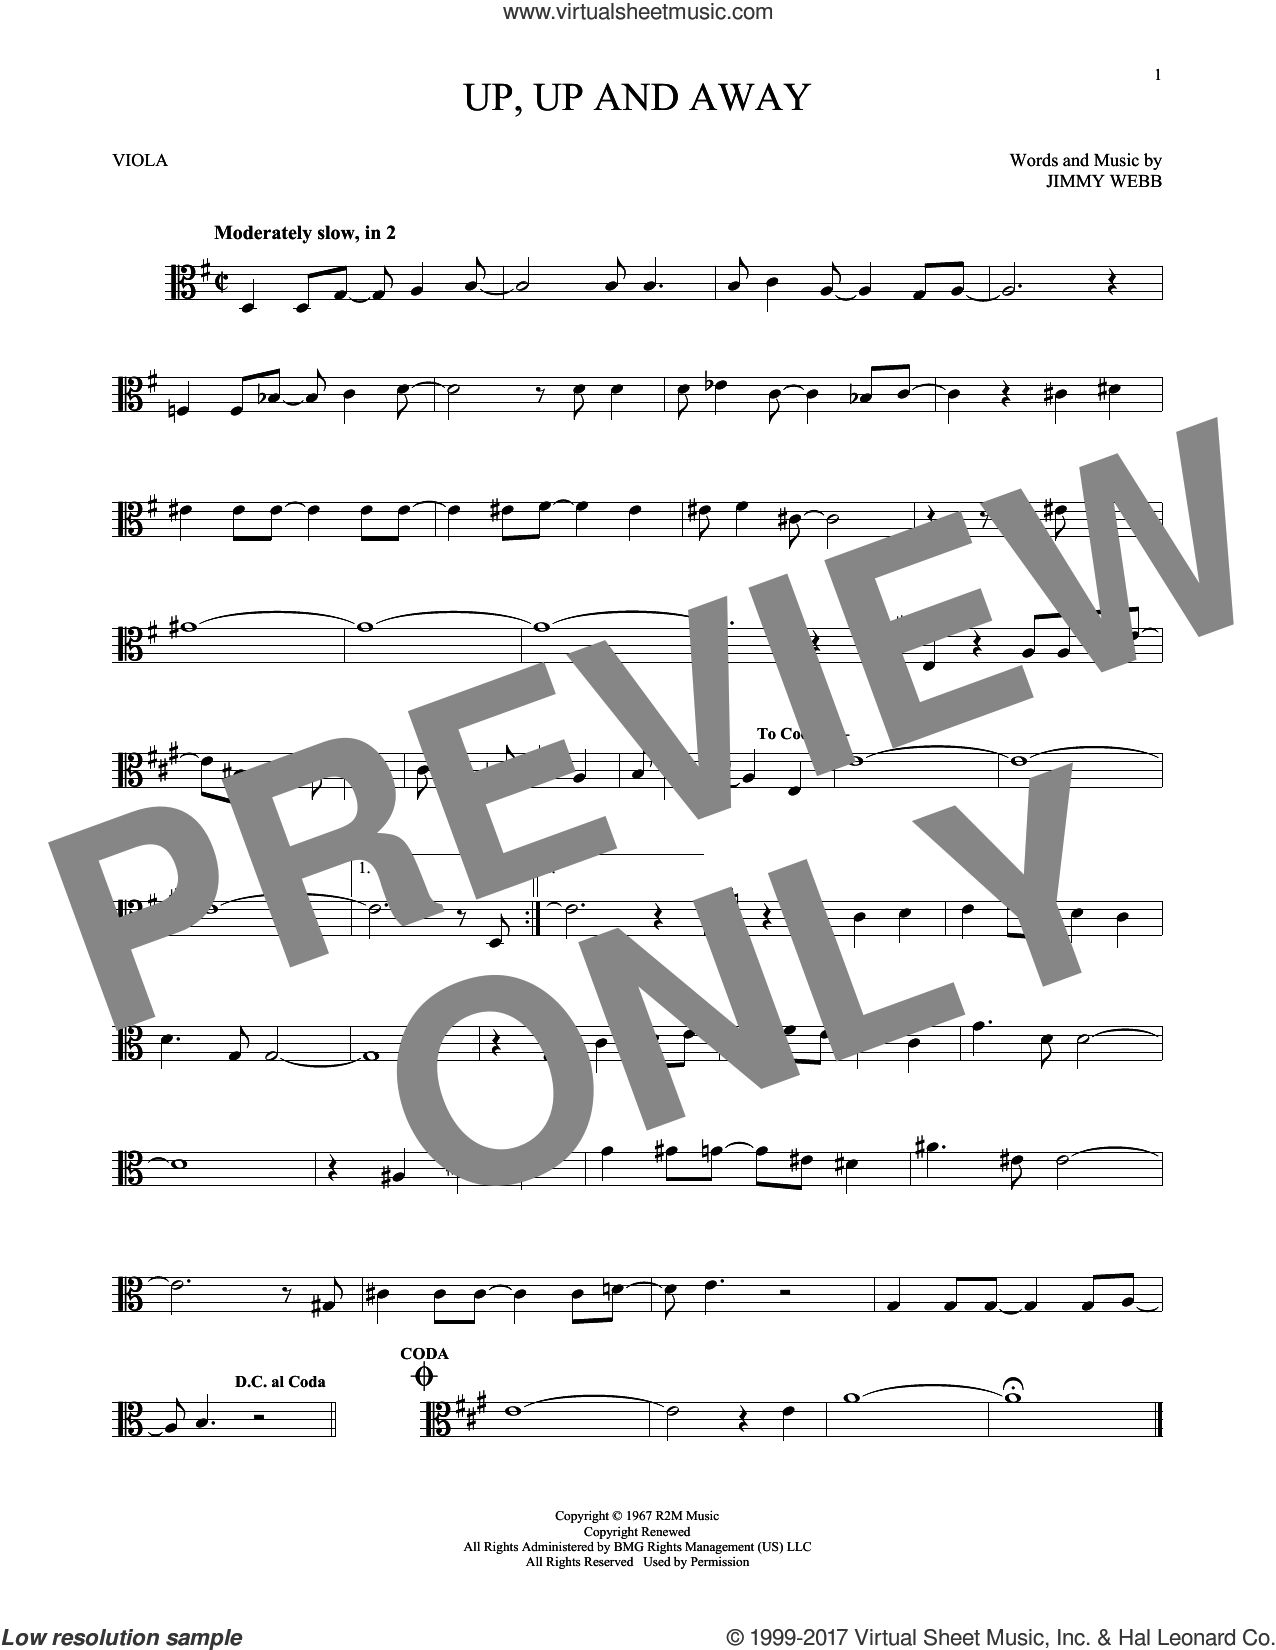 Up, Up And Away sheet music for viola solo by The Fifth Dimension and Jimmy Webb, intermediate skill level